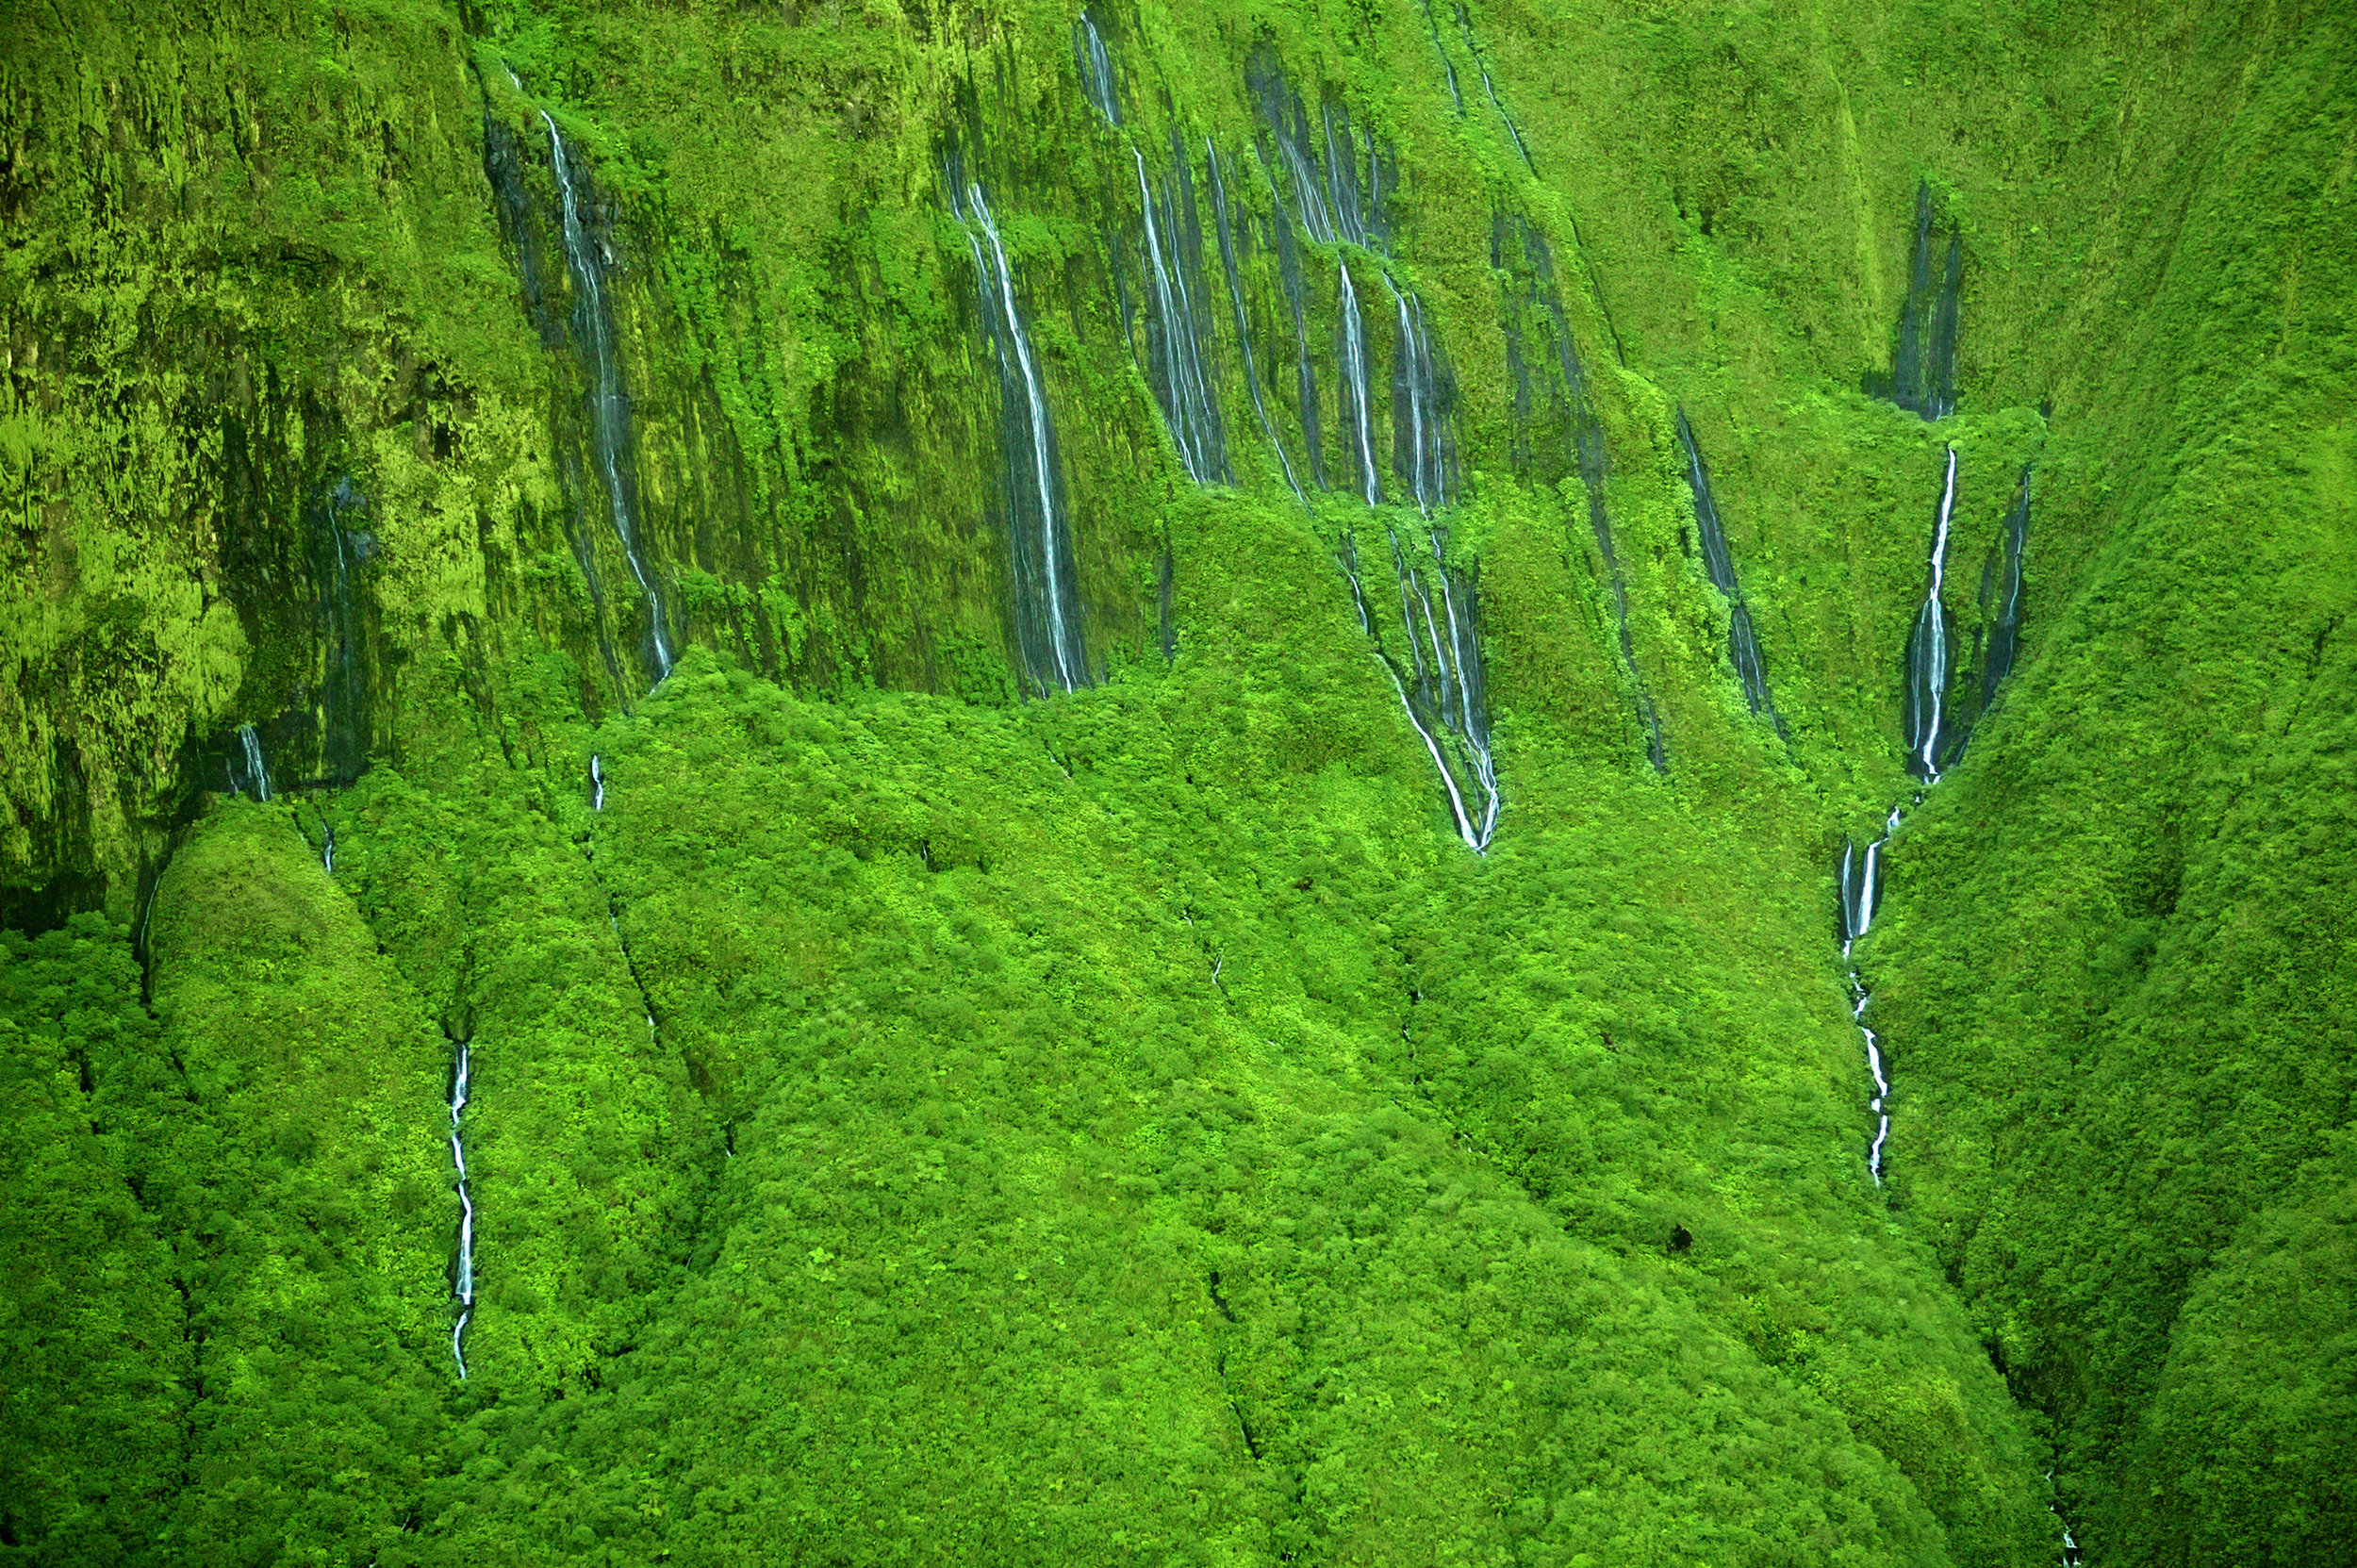 Blue_Soul_Maui_Private_Tour_Hana_Waterfall_6.jpg